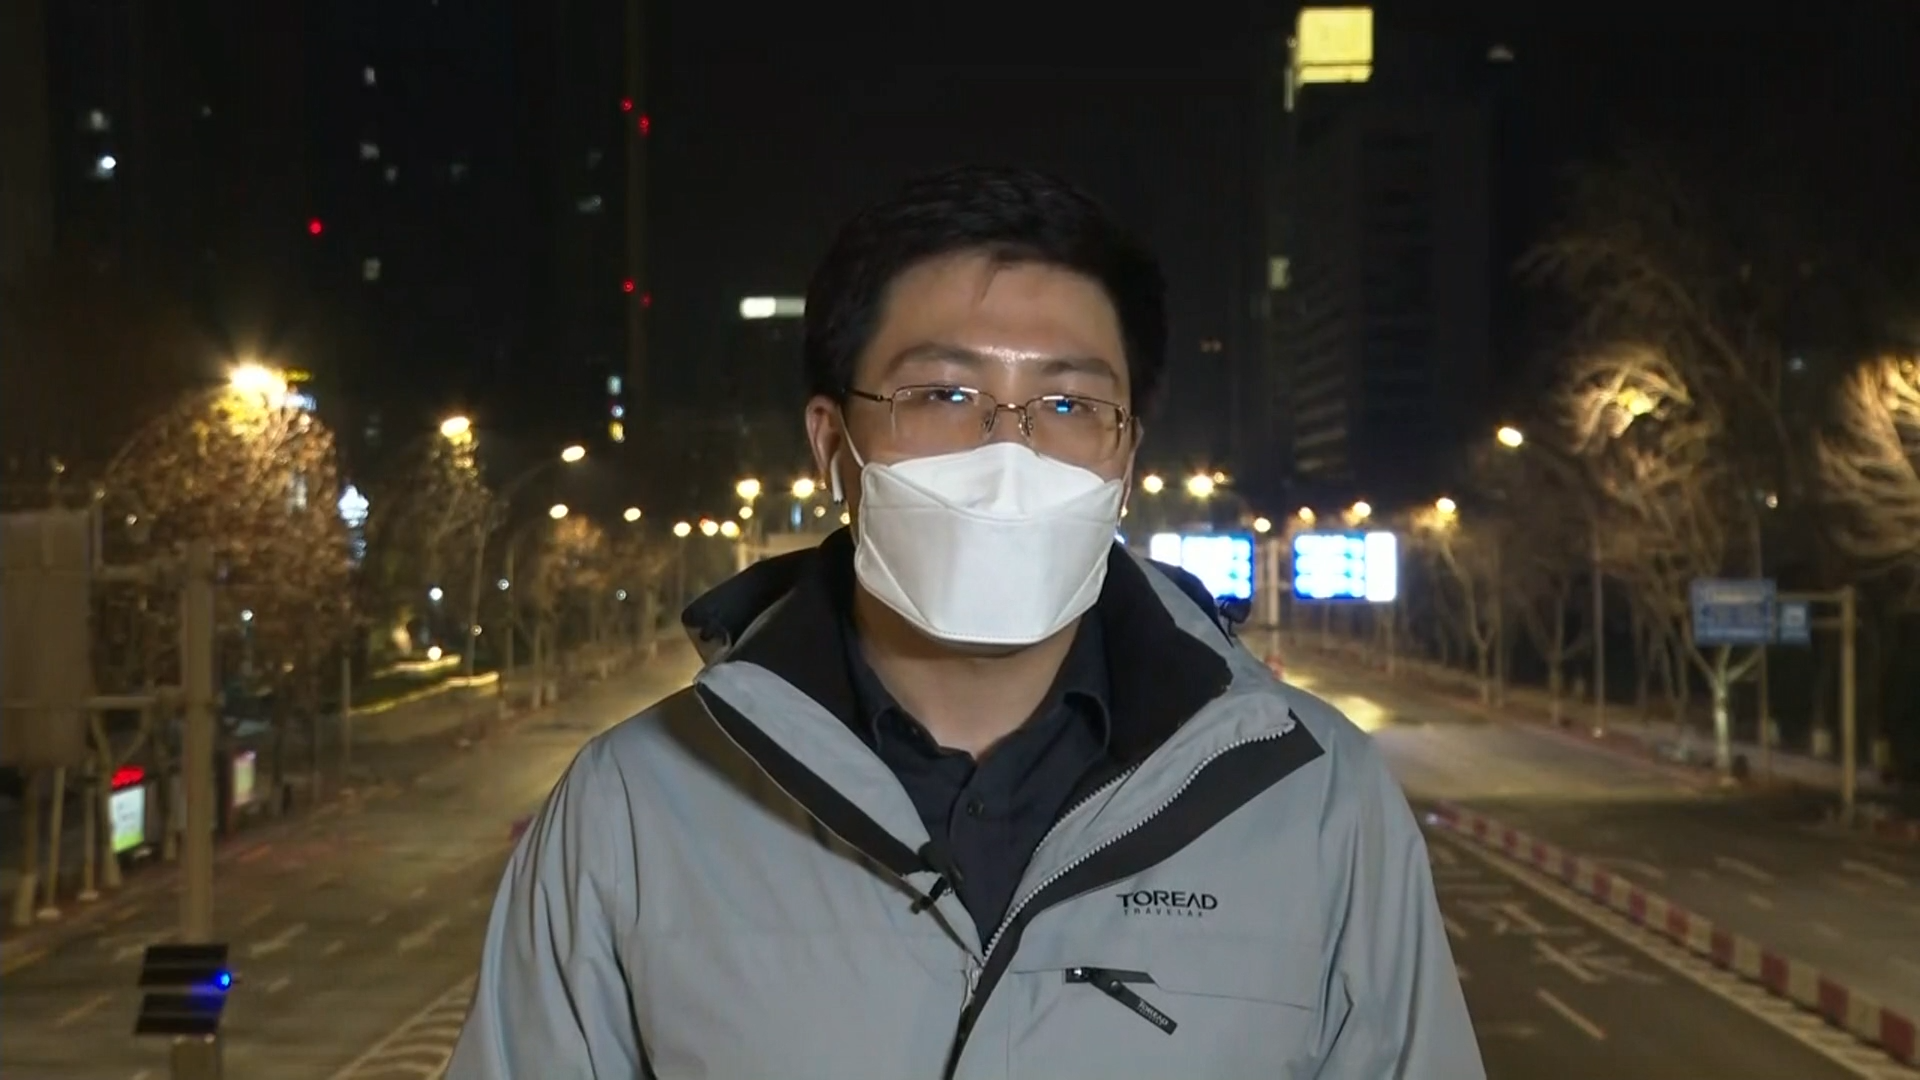 Coronavirus outbreak has been 'politicised' by some countries, says China state TV correspondent Zhou Jiaxin - channel 4